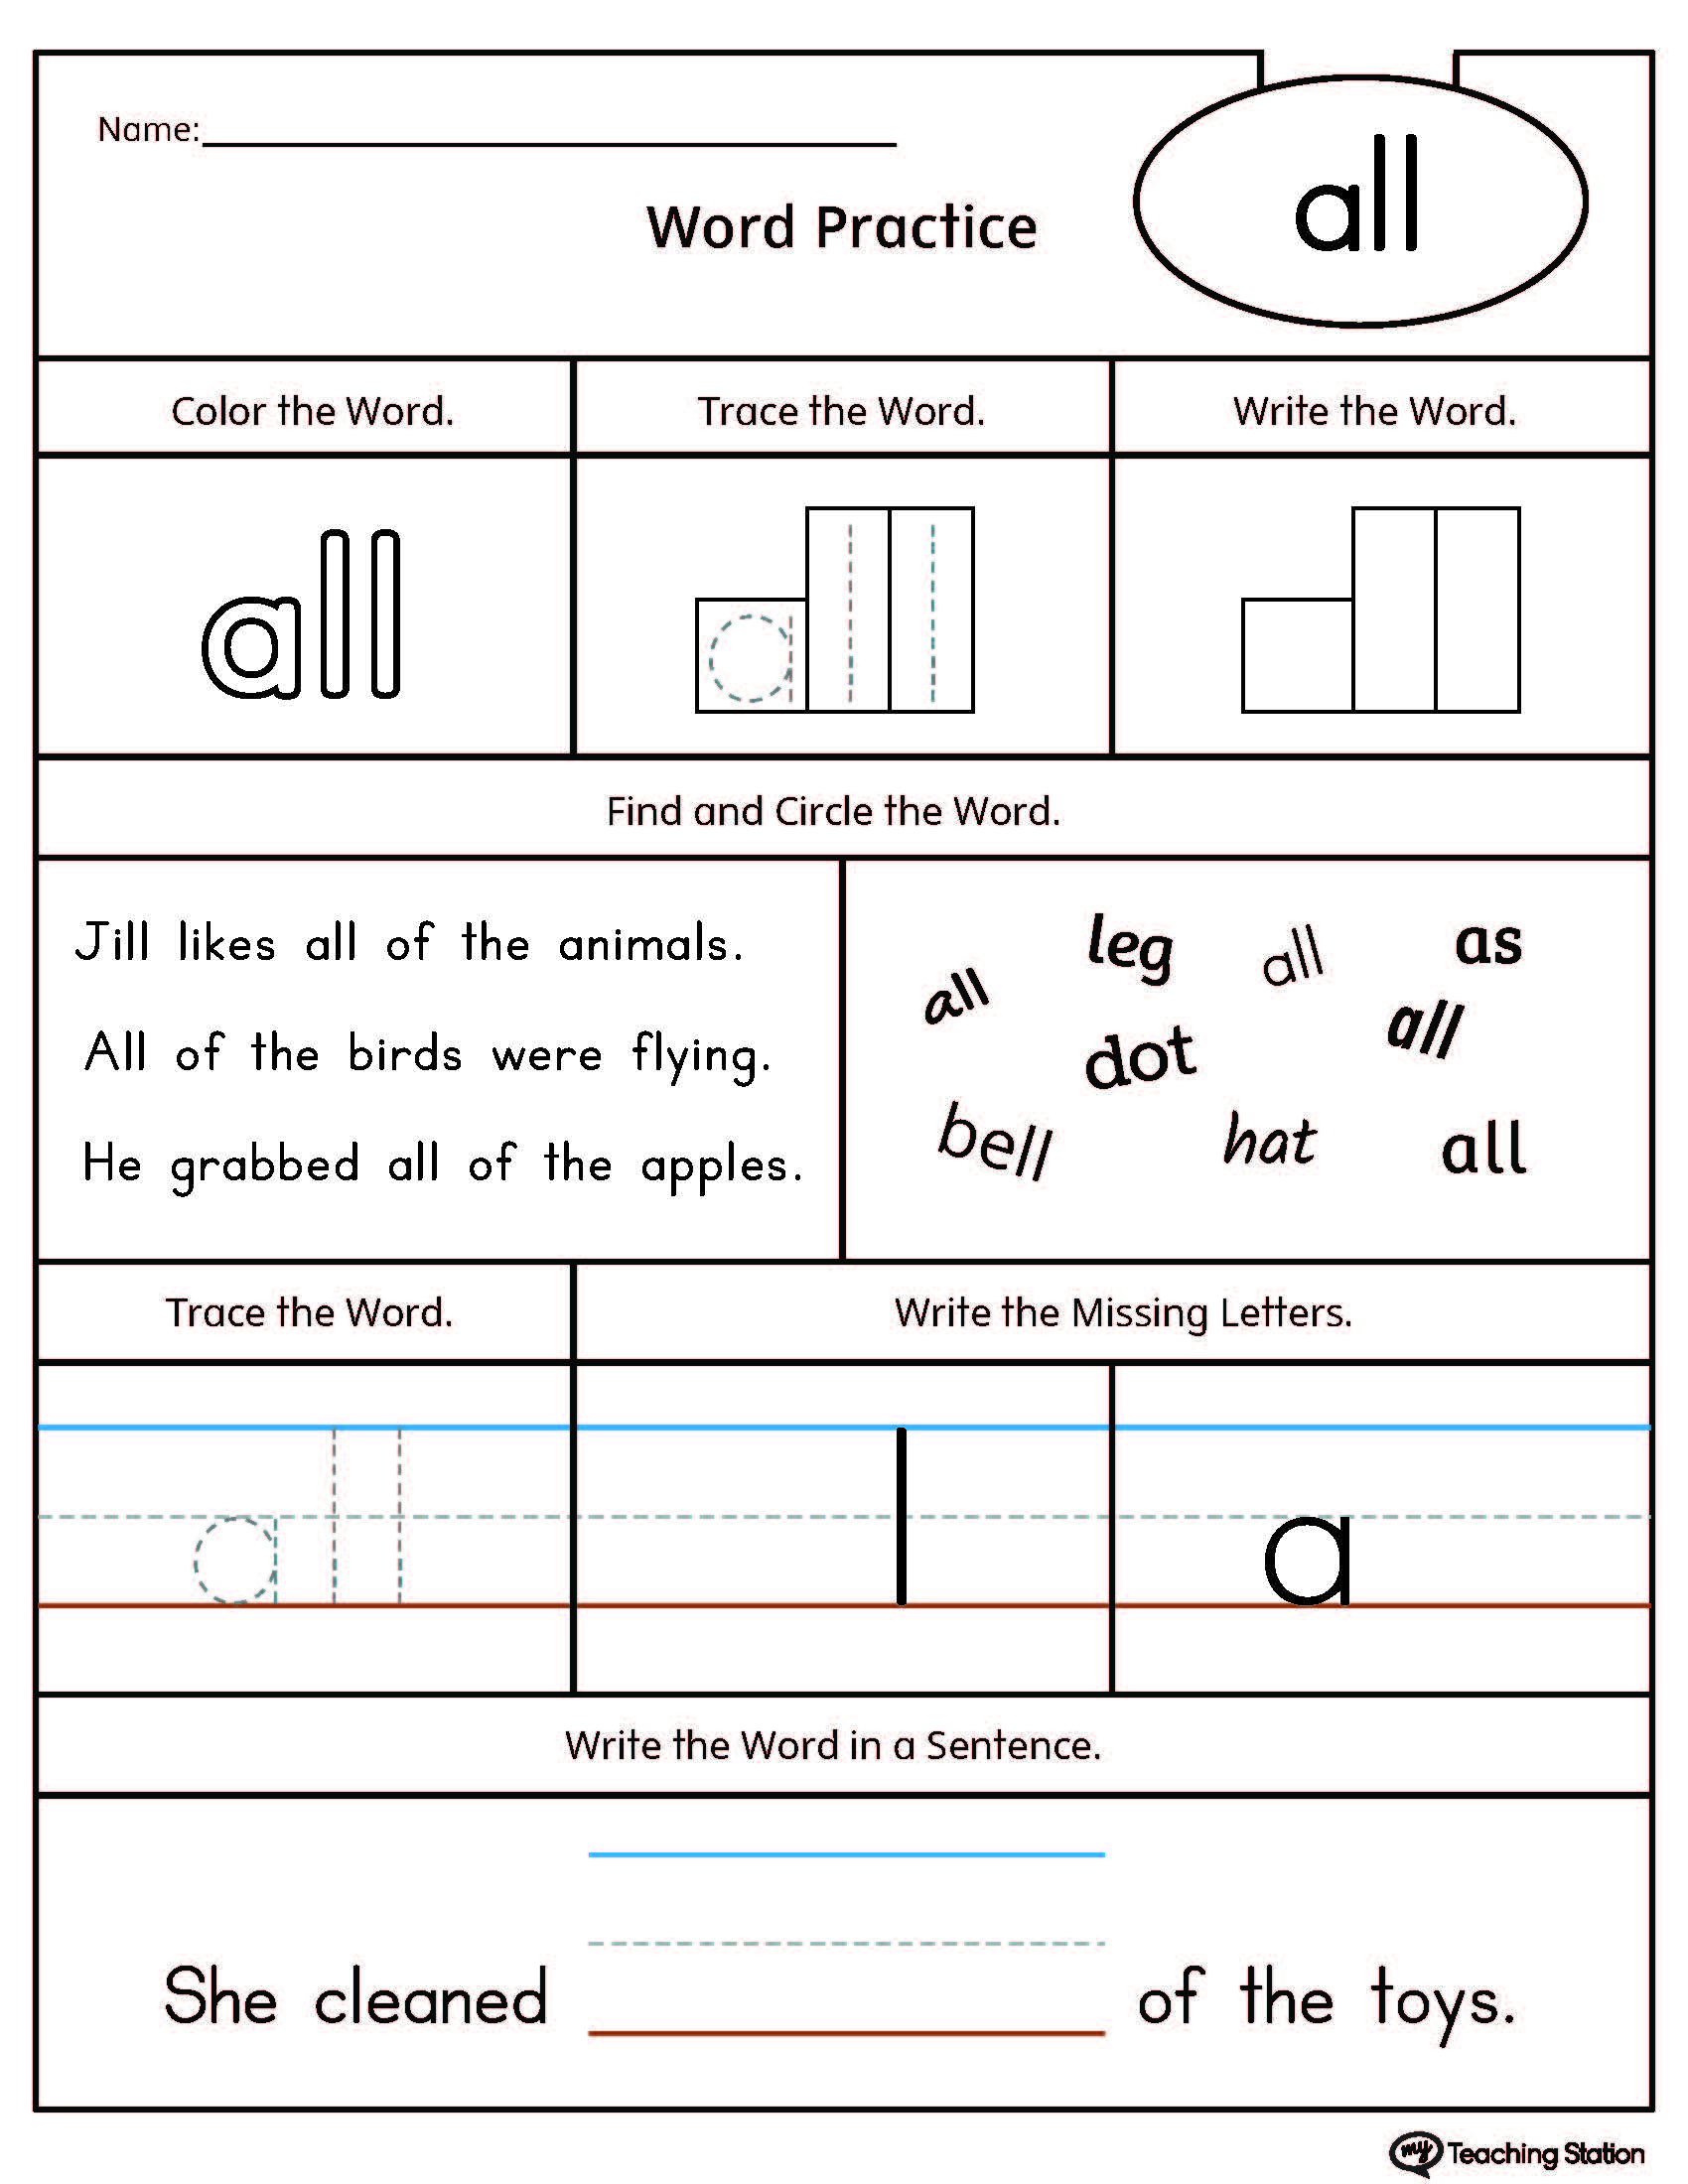 High Frequency Words Printable Worksheets  Myteachingstationcom